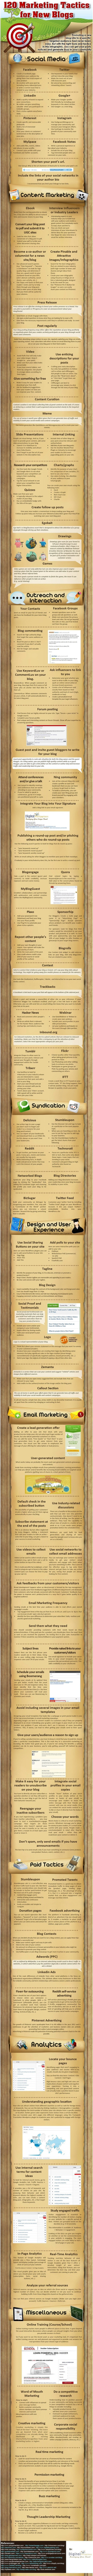 120 Marketing Tactics For Your Blog (Infographic) | MarketingHits | Scoop.it